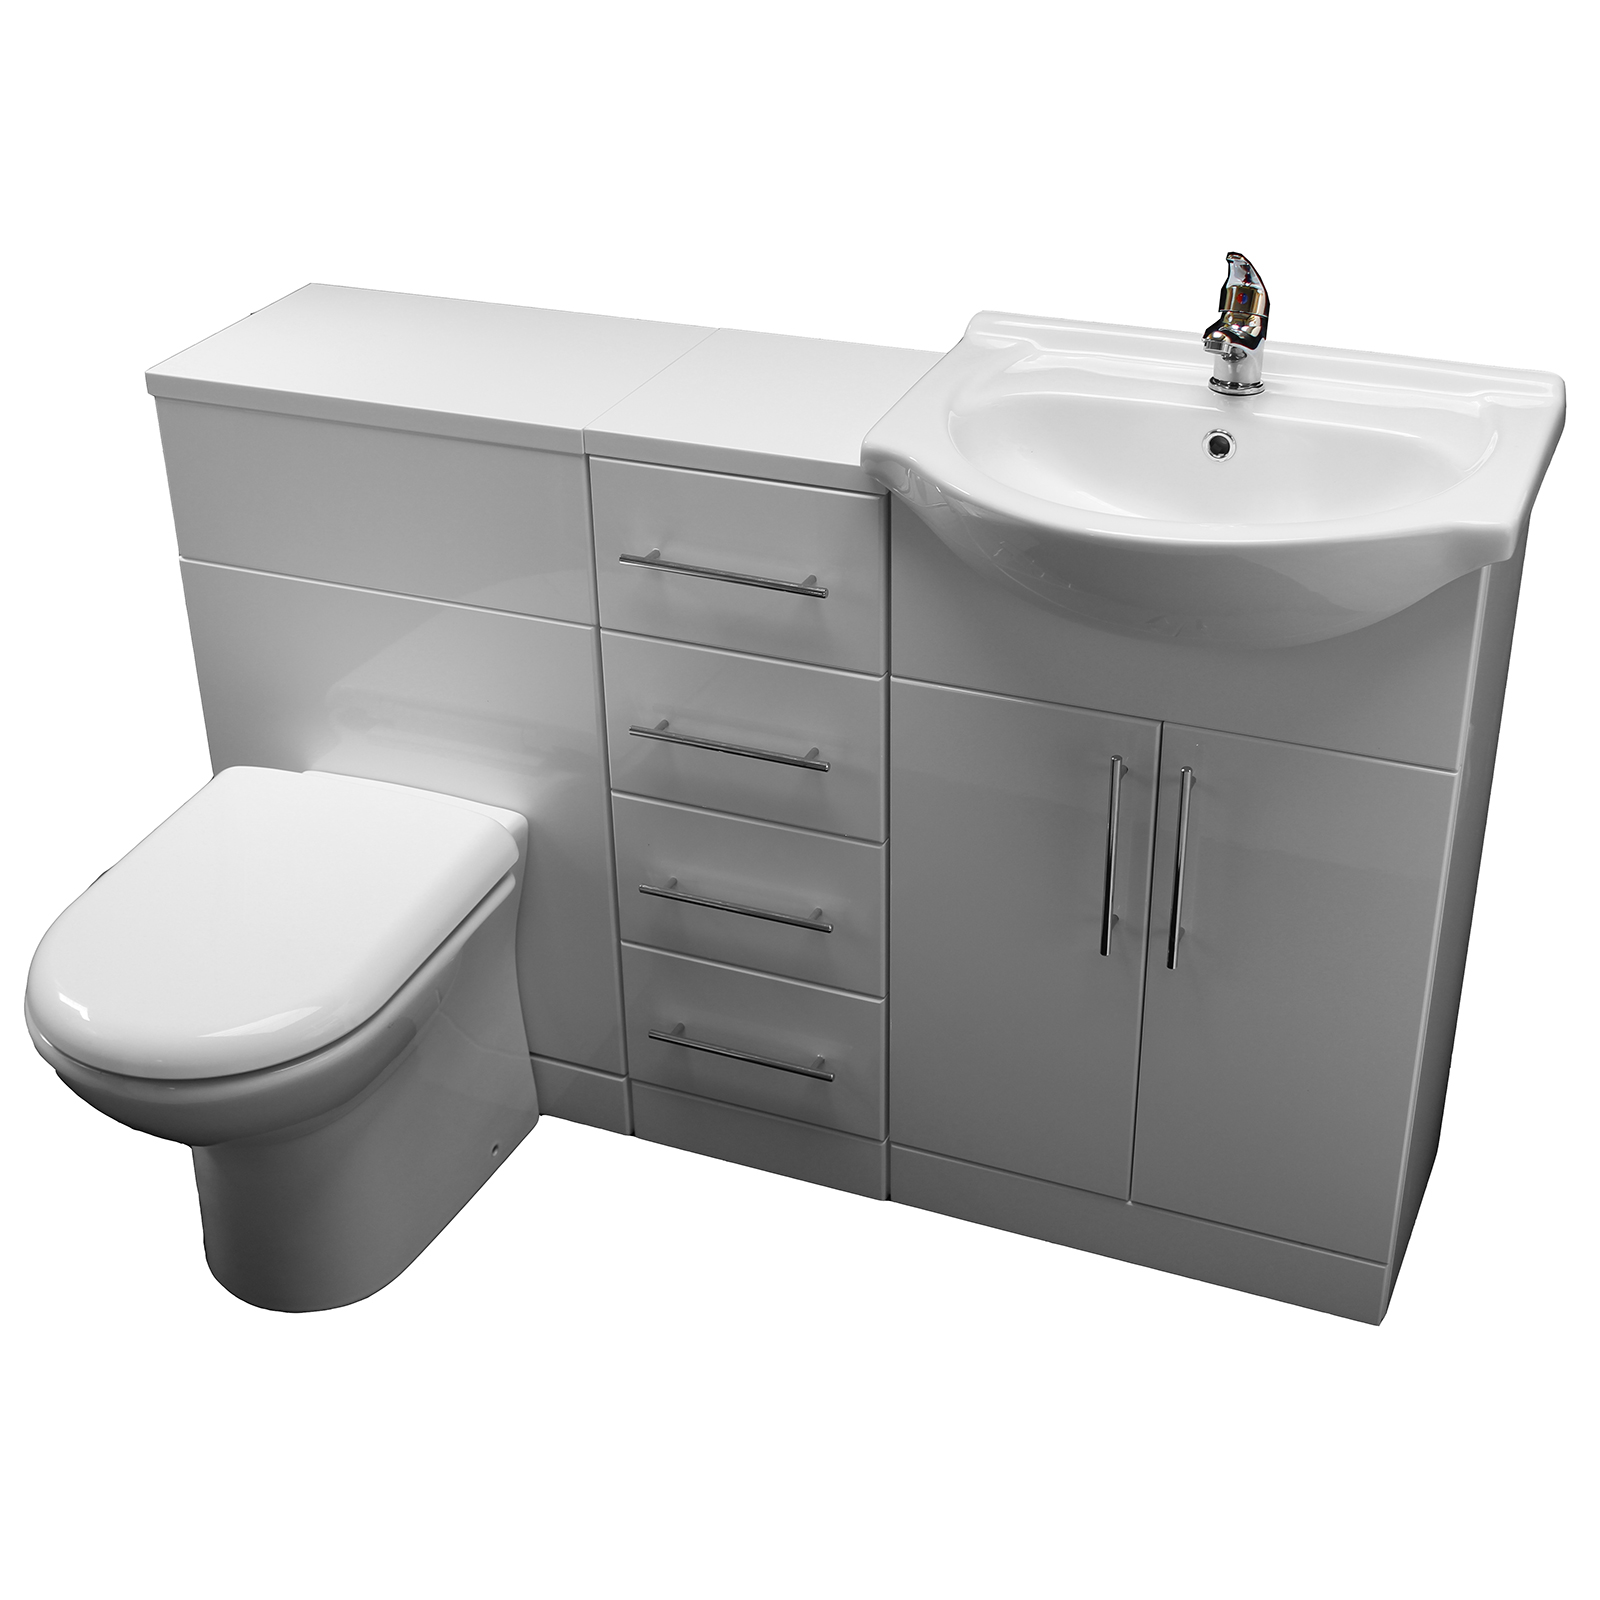 Allbits eden white gloss wc combination 550 vanity unit - Combination bathroom vanity units ...